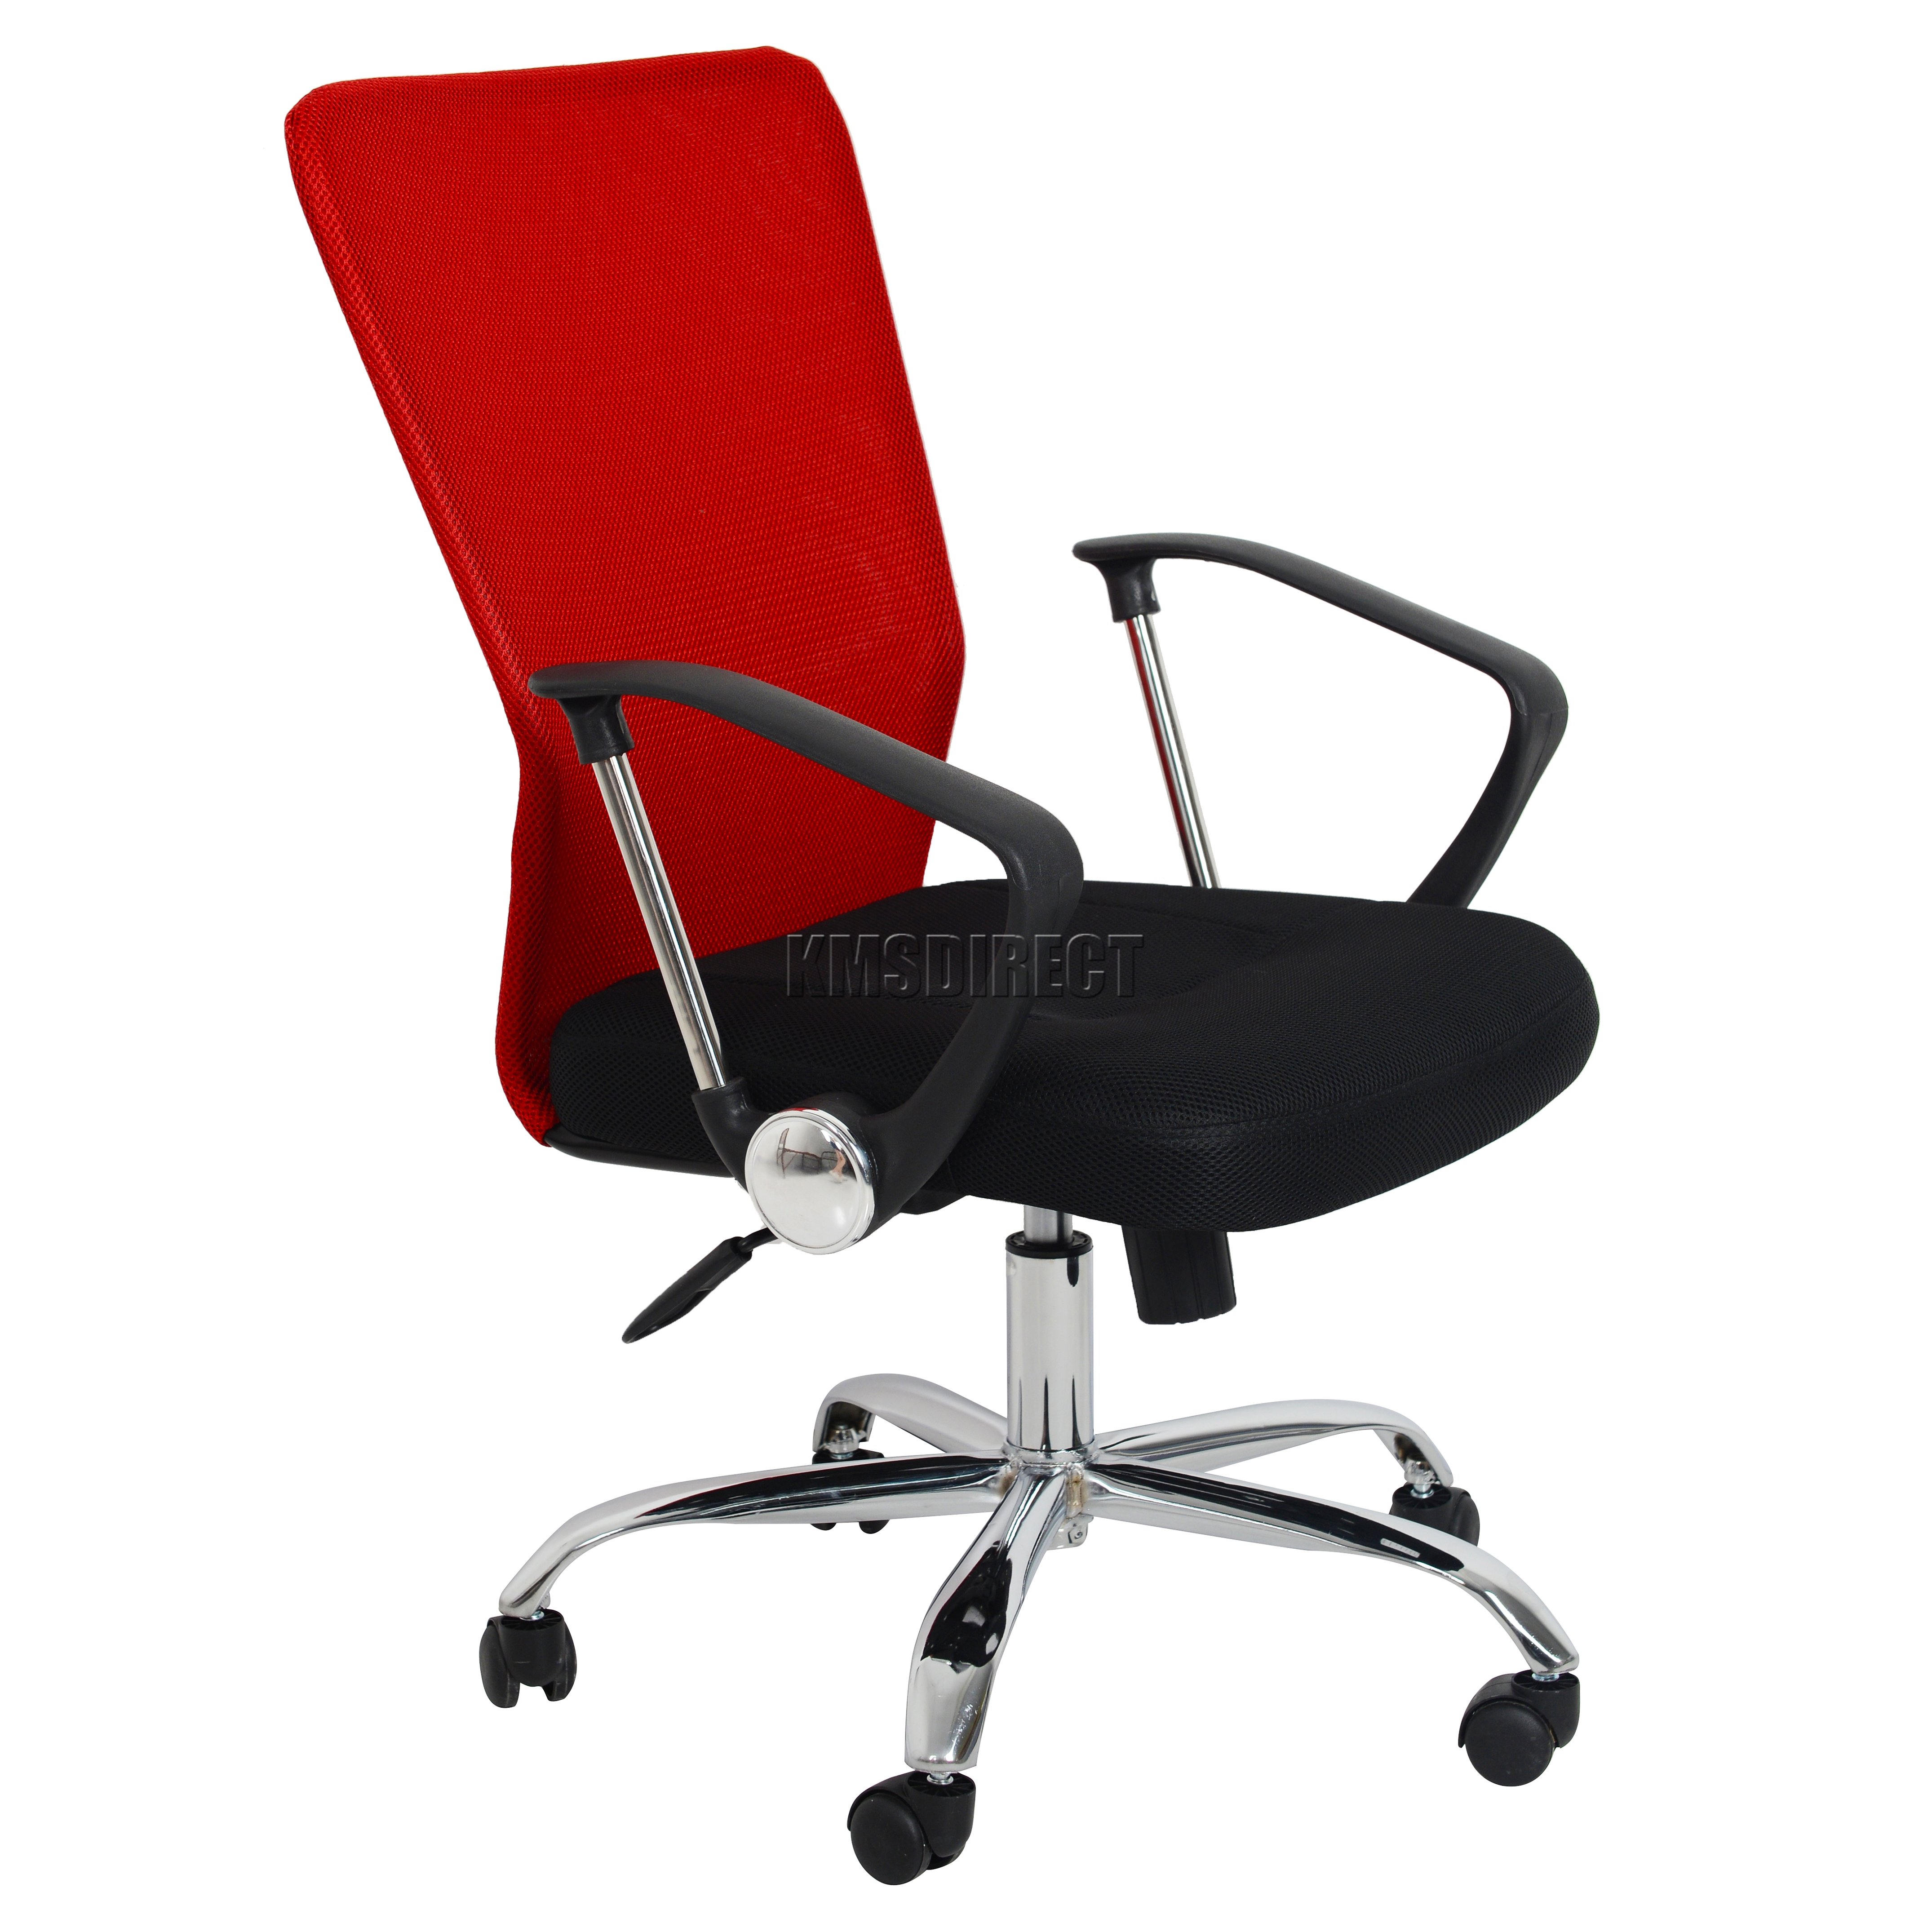 Cloth Computer Chair Foxhunter Computer Executive Office Chair Mesh Fabric